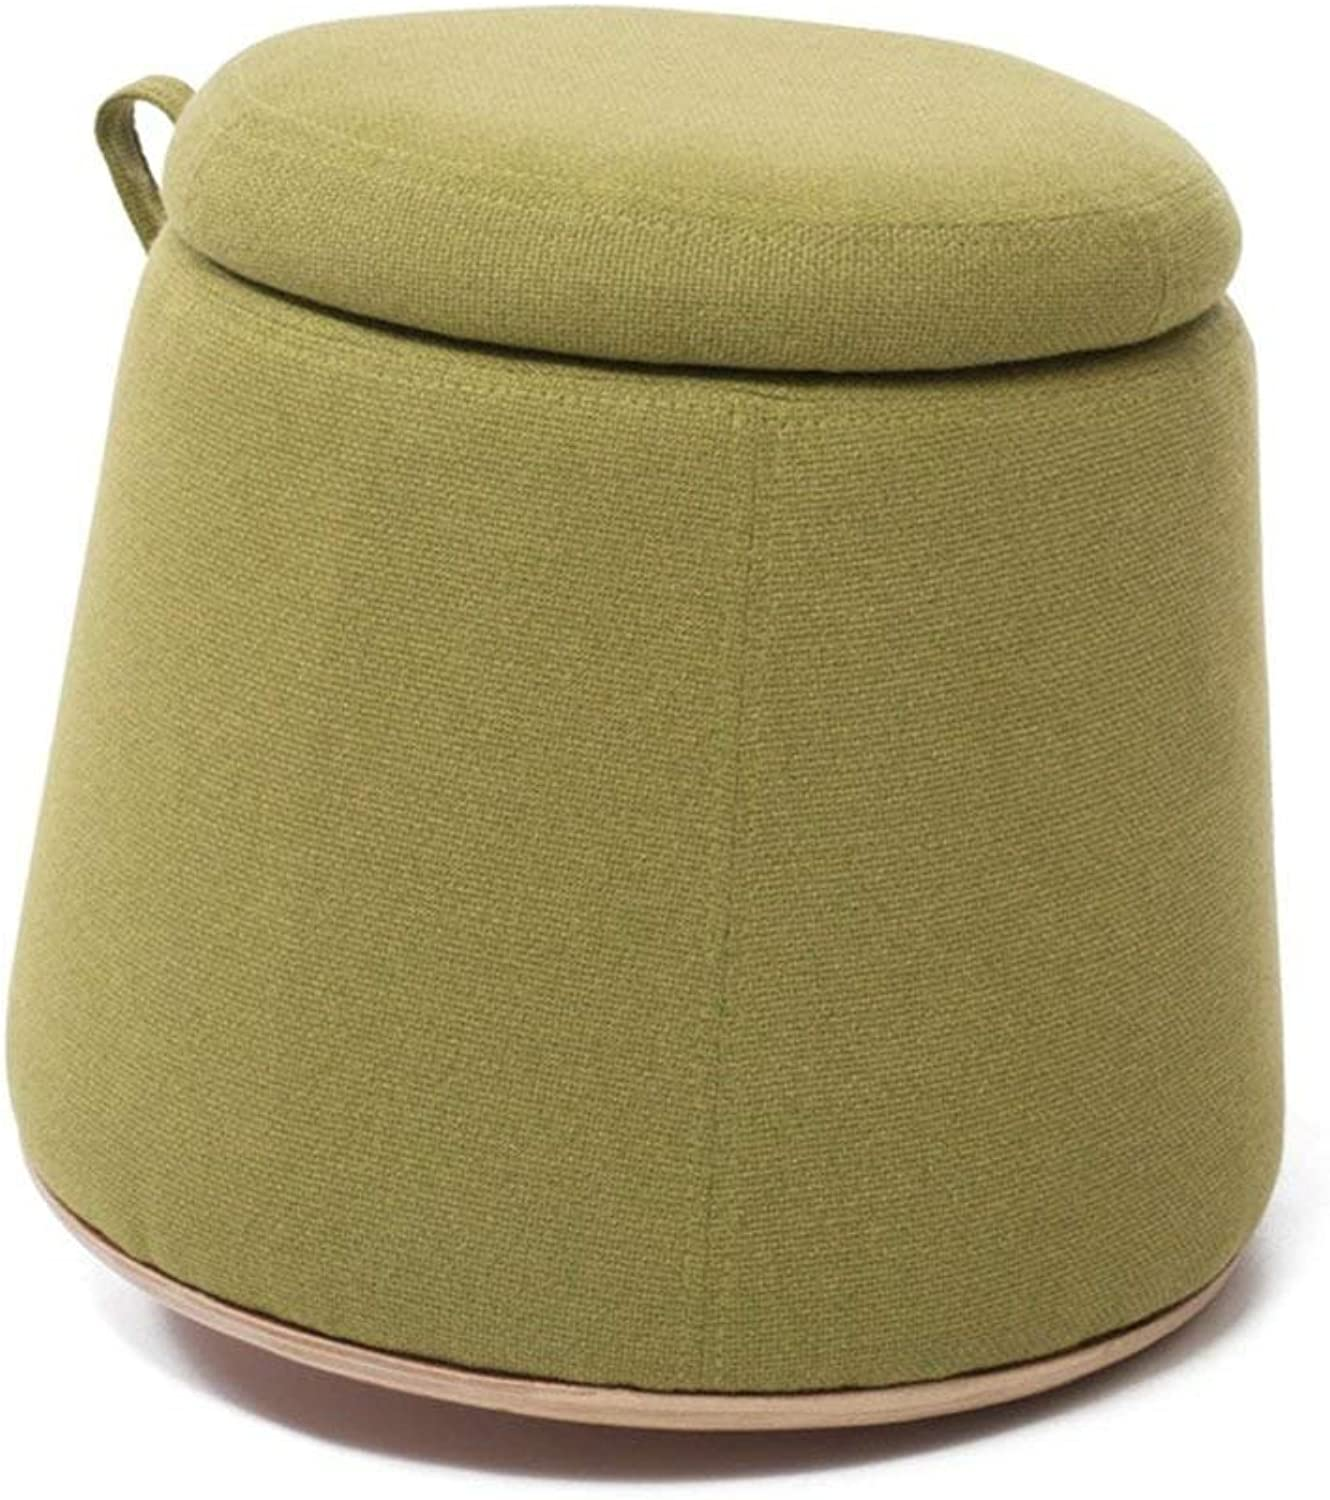 QTQZ Brisk- Creative Pastoral Storage Stool Bedroom for shoes Stool Trolley Storage Stool Hand Knit The Stool (4 colors Optional) (30  30cm) (color  C)